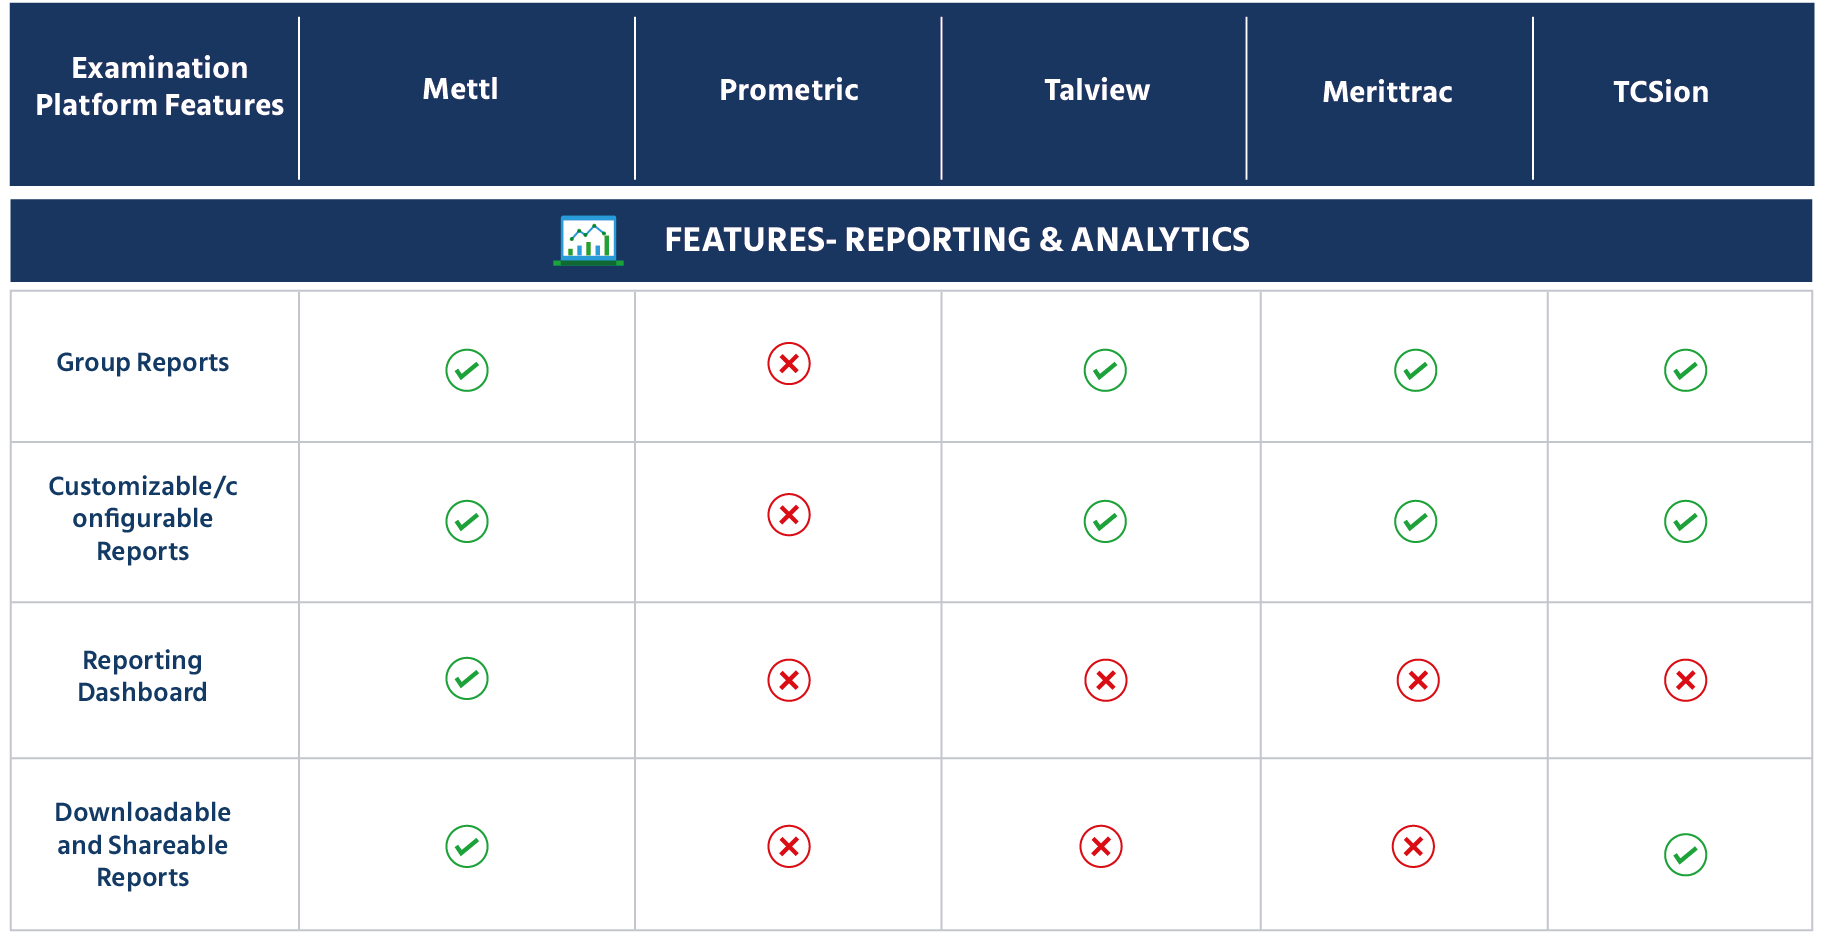 Features Reporting & Analytics